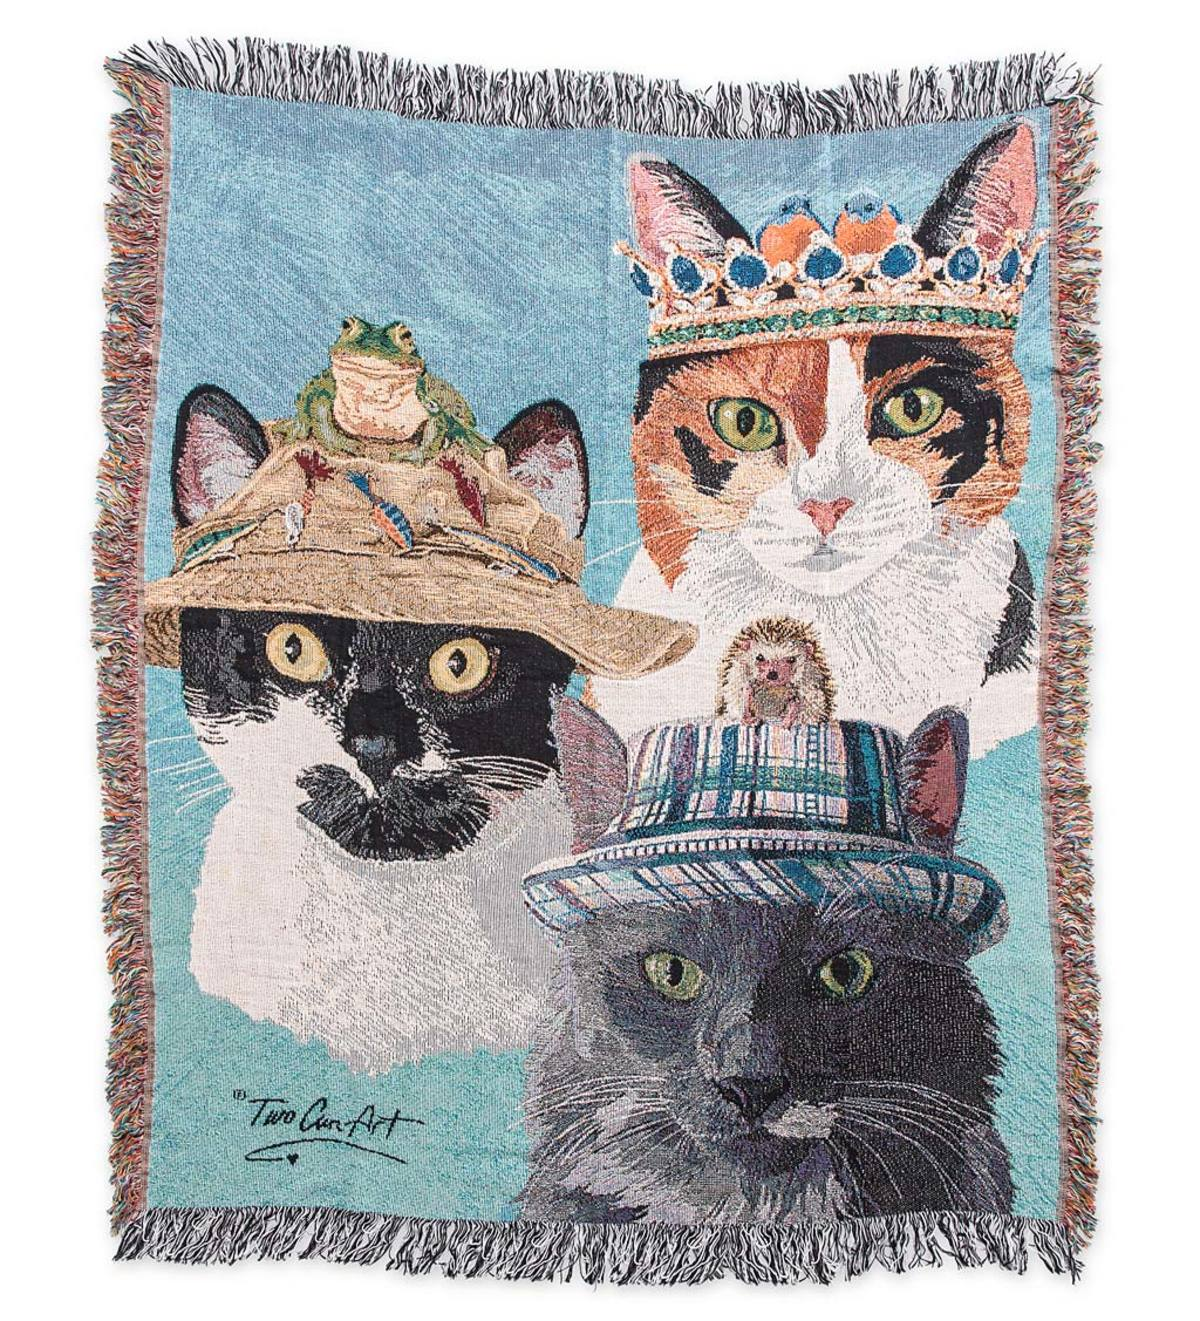 Cats in Hats Tapestry Throw Blanket